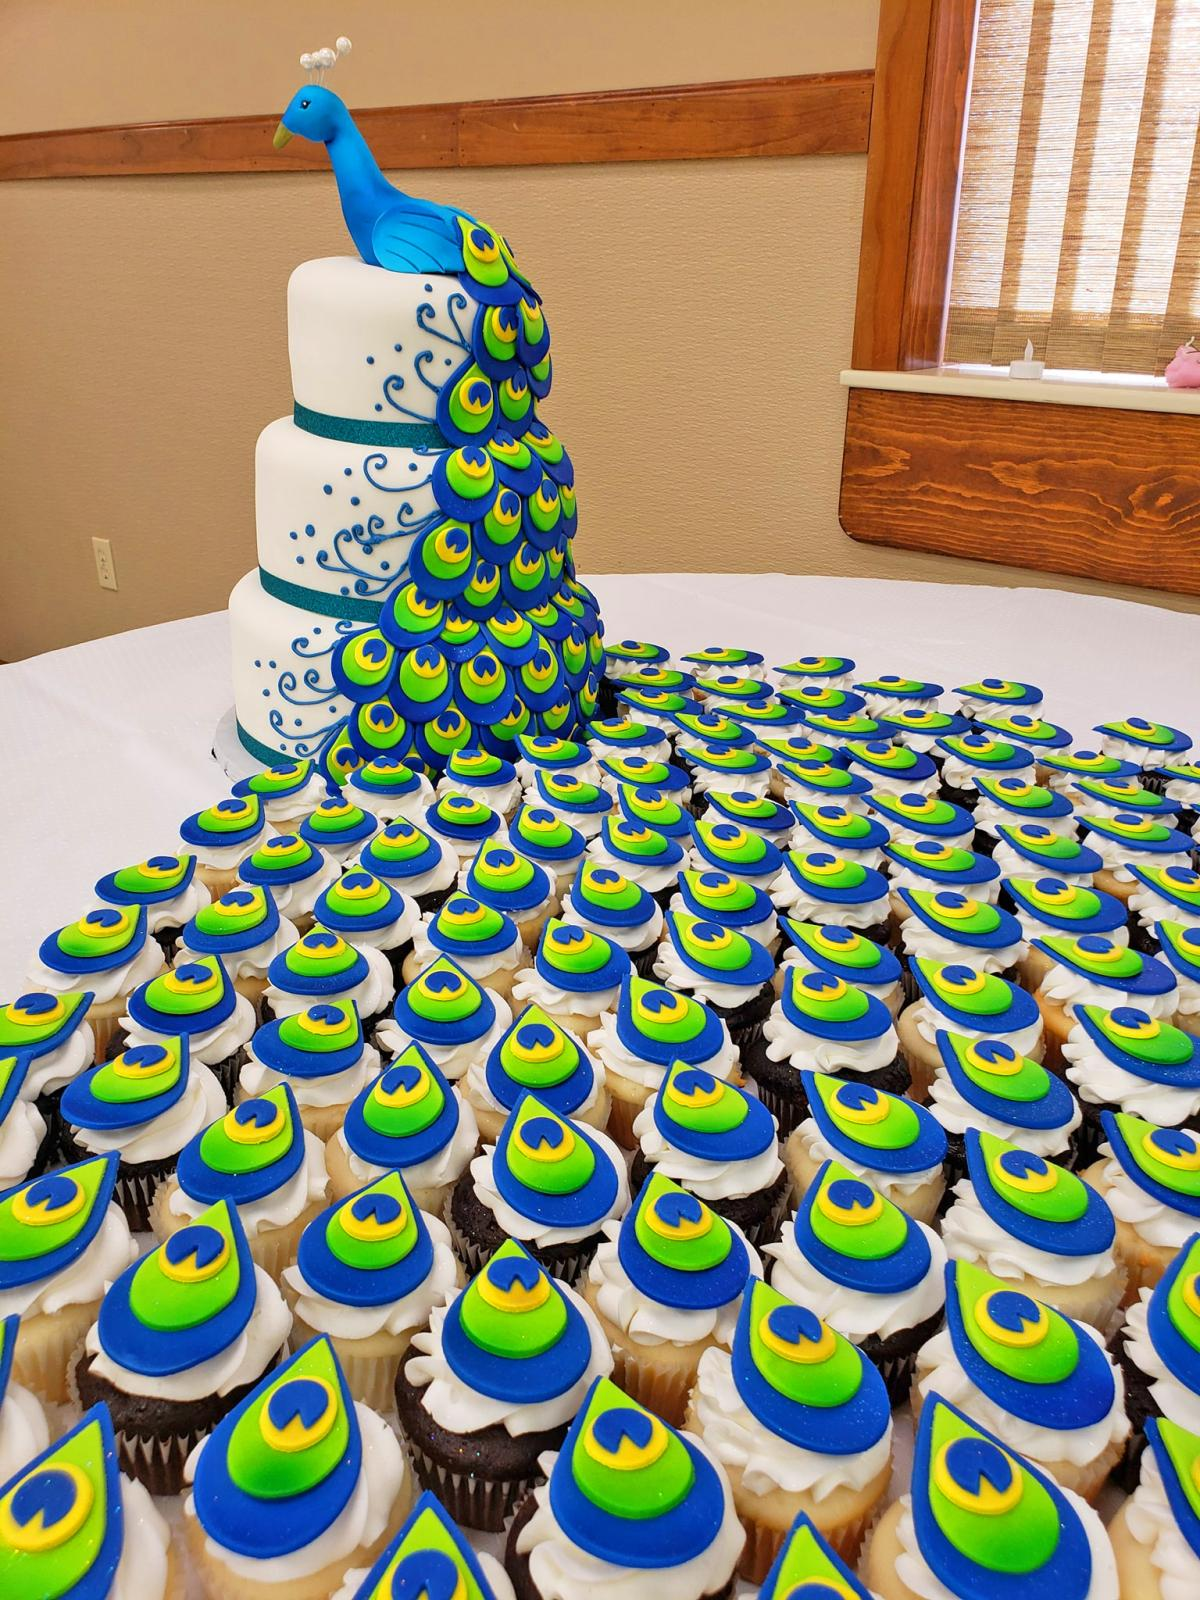 Surprising This Incredible Peacock Wedding Cake Uses Cupcakes For The Tail Personalised Birthday Cards Veneteletsinfo